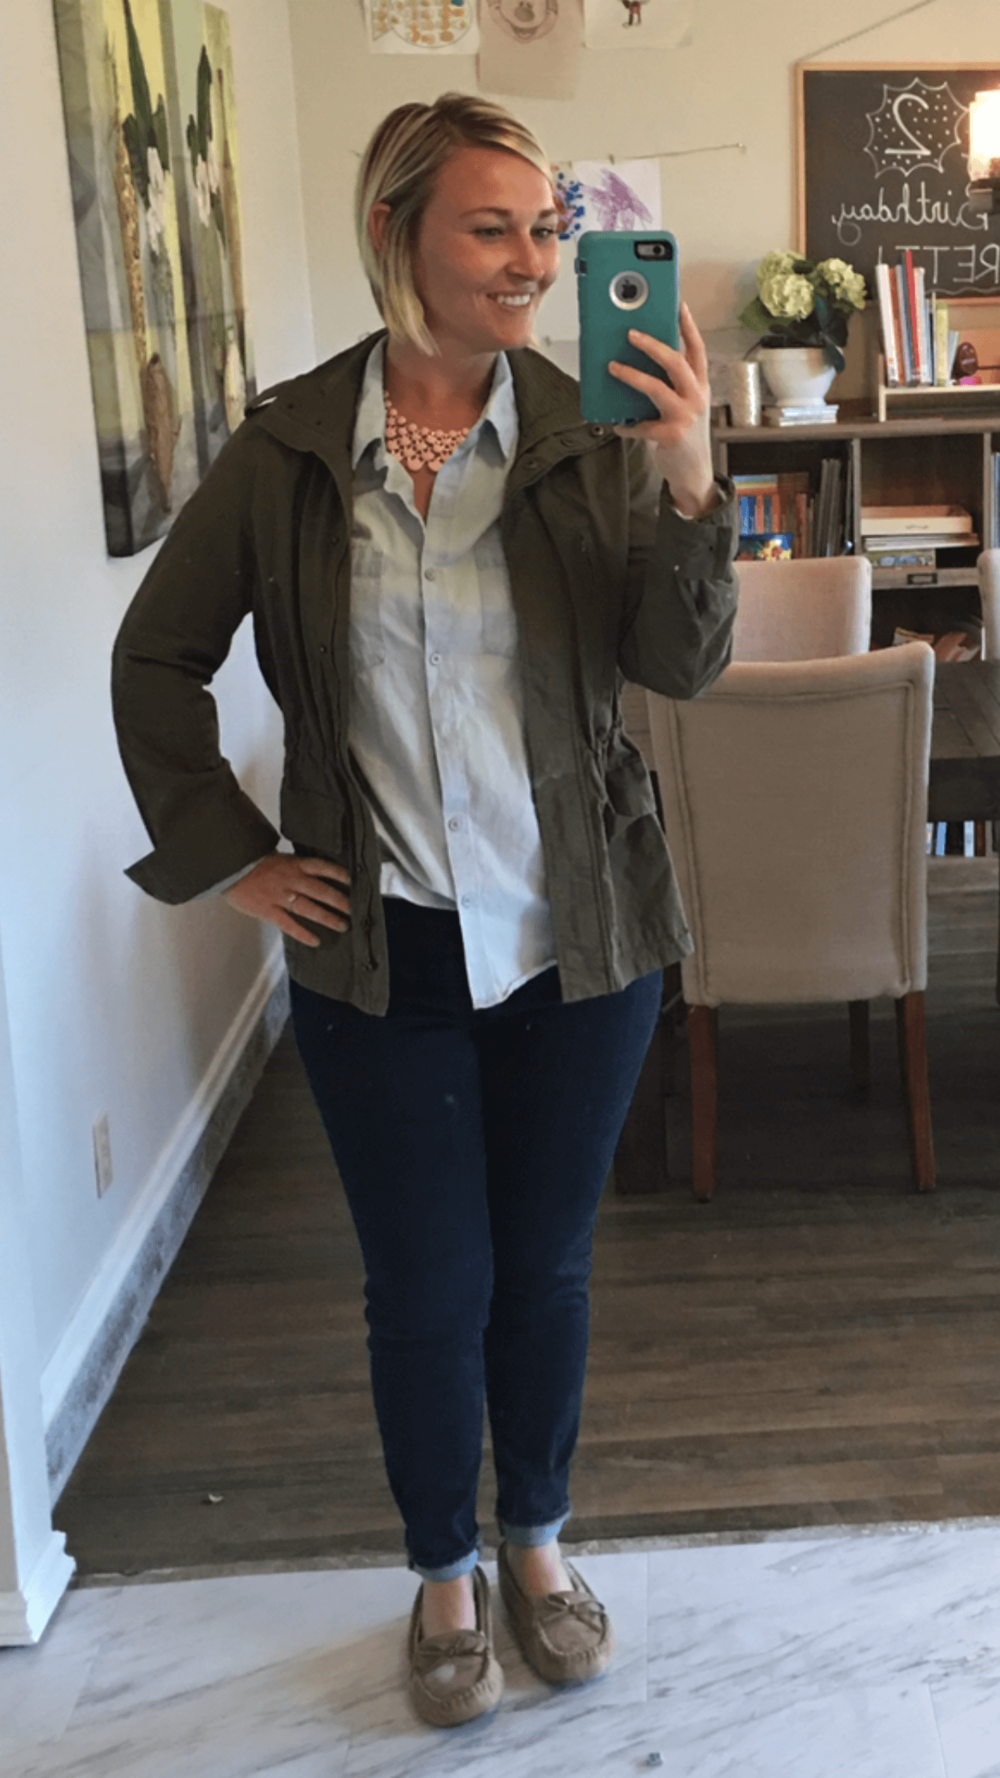 Chambray Top (partially tucked) + Statement Color Necklace + Navy Pants + Utility Jacket + Moccasin Slippers